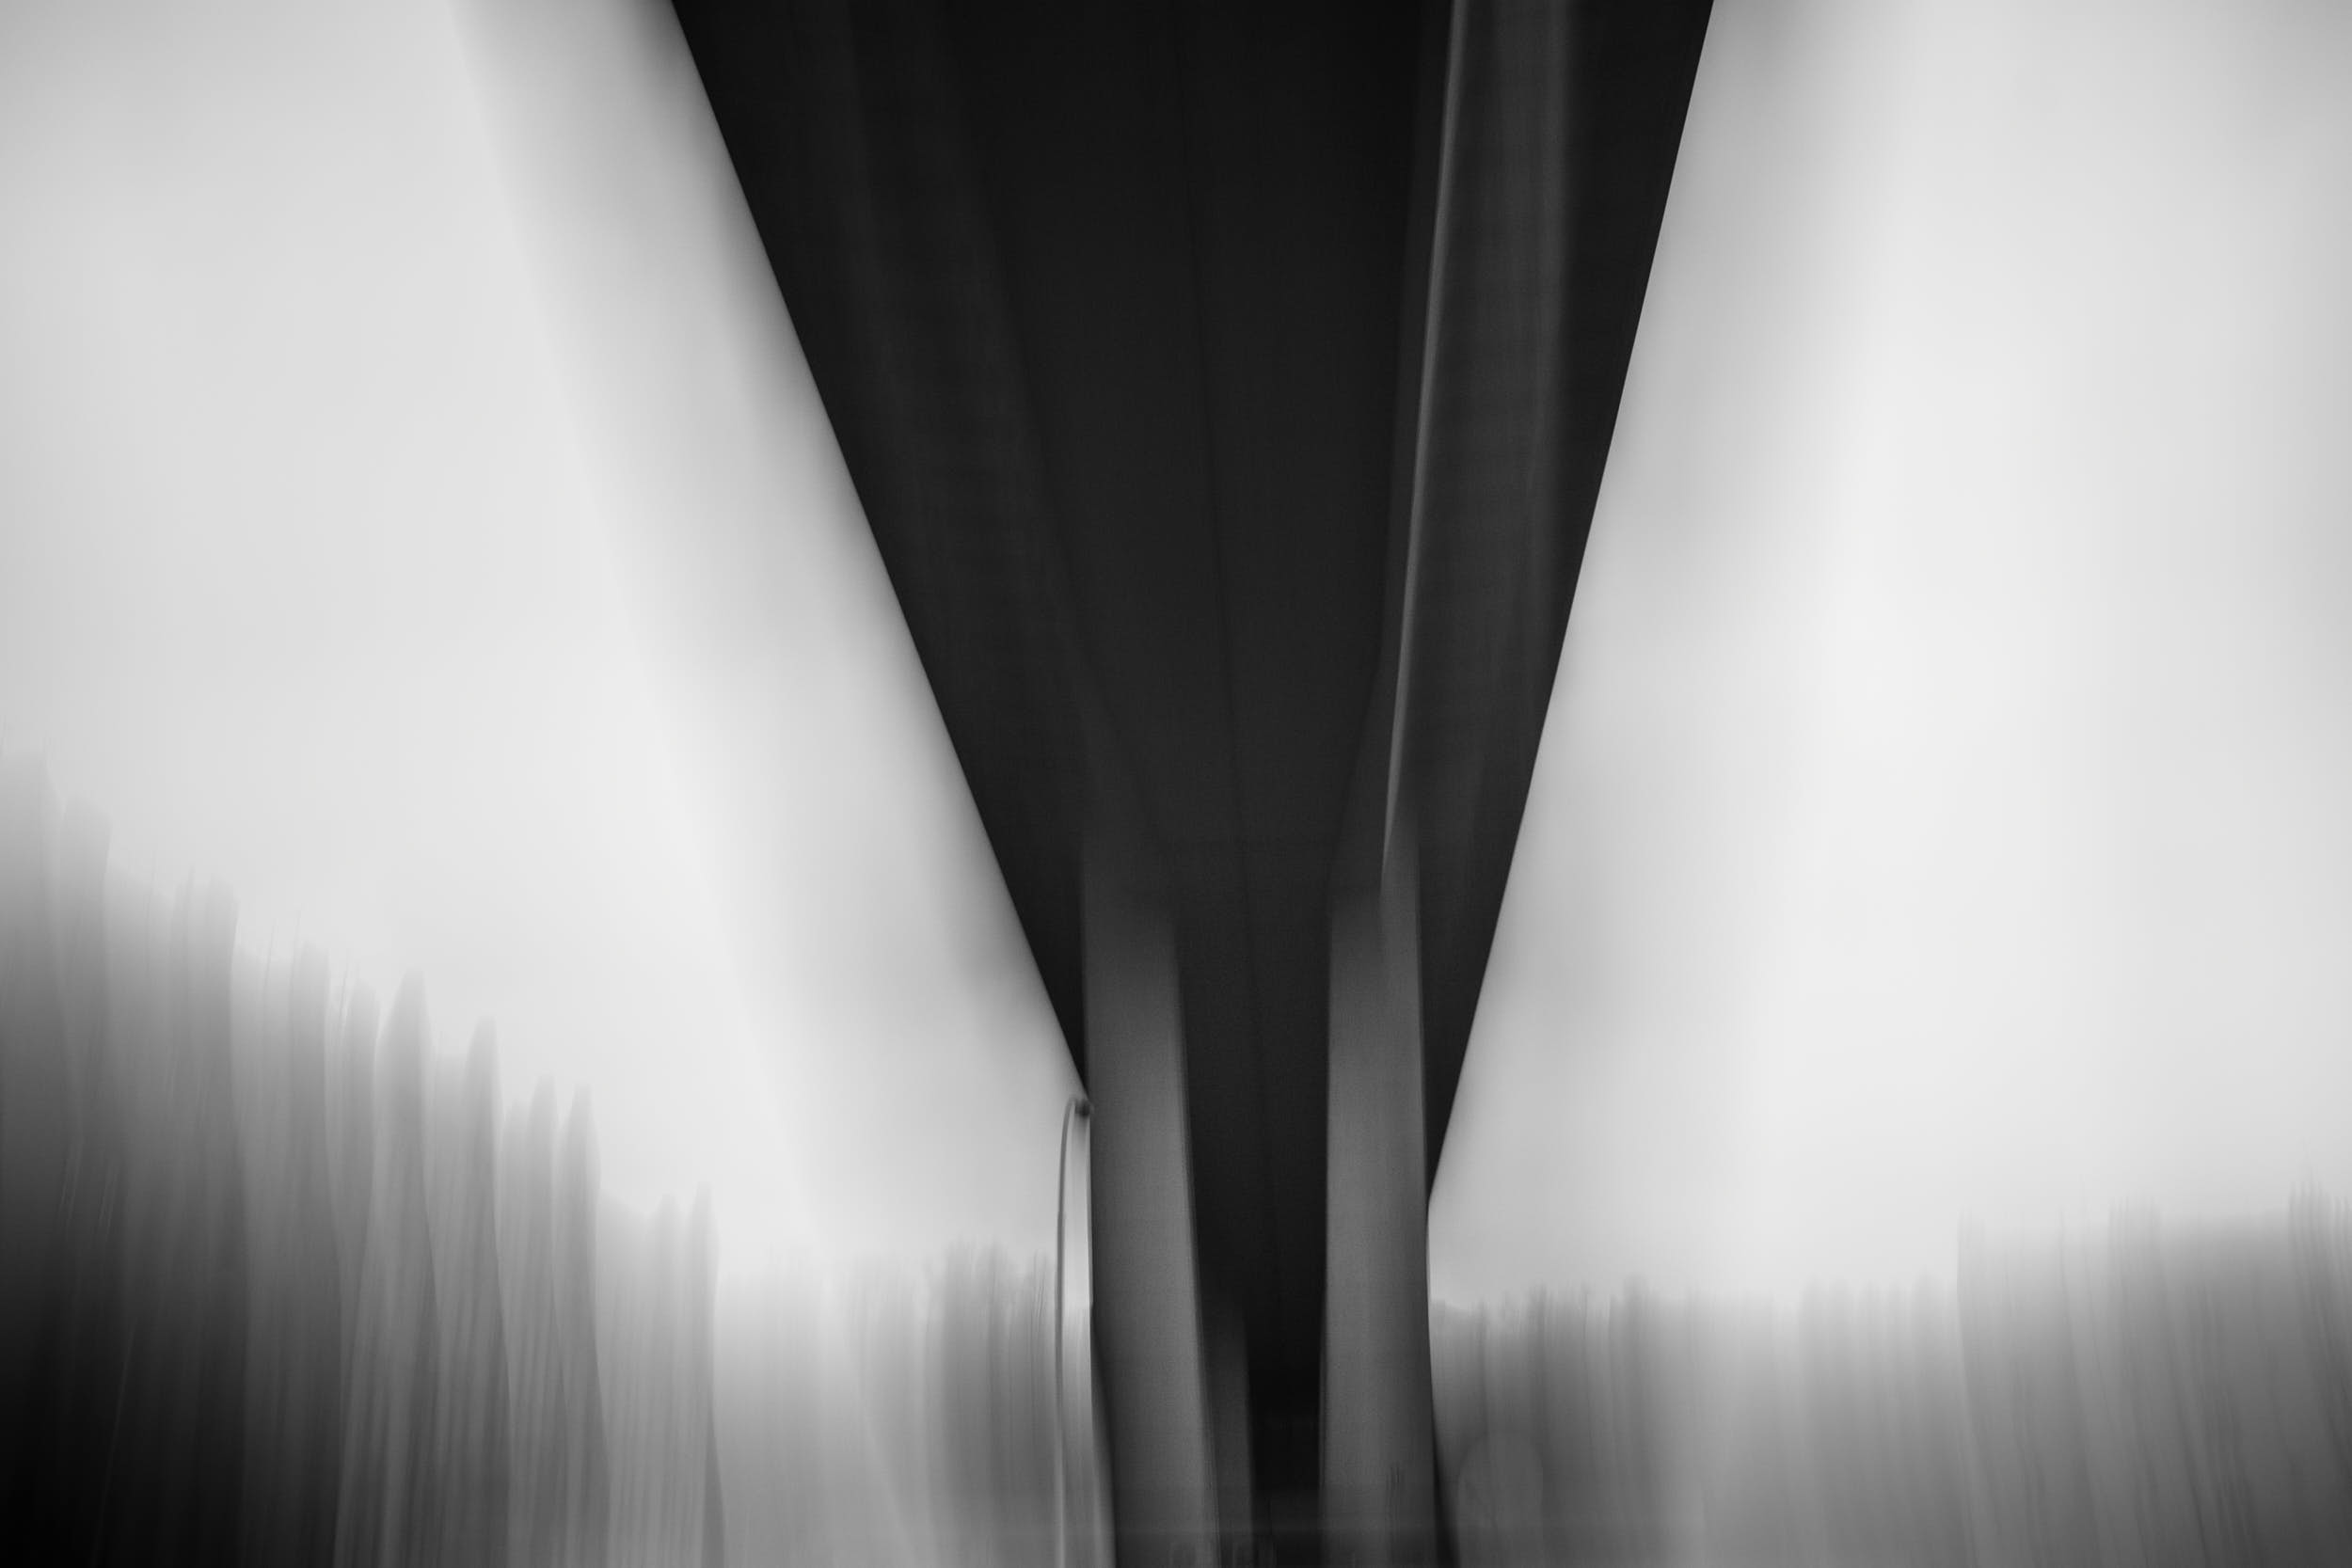 Abstract black and white photography of a bridge with motion blur.